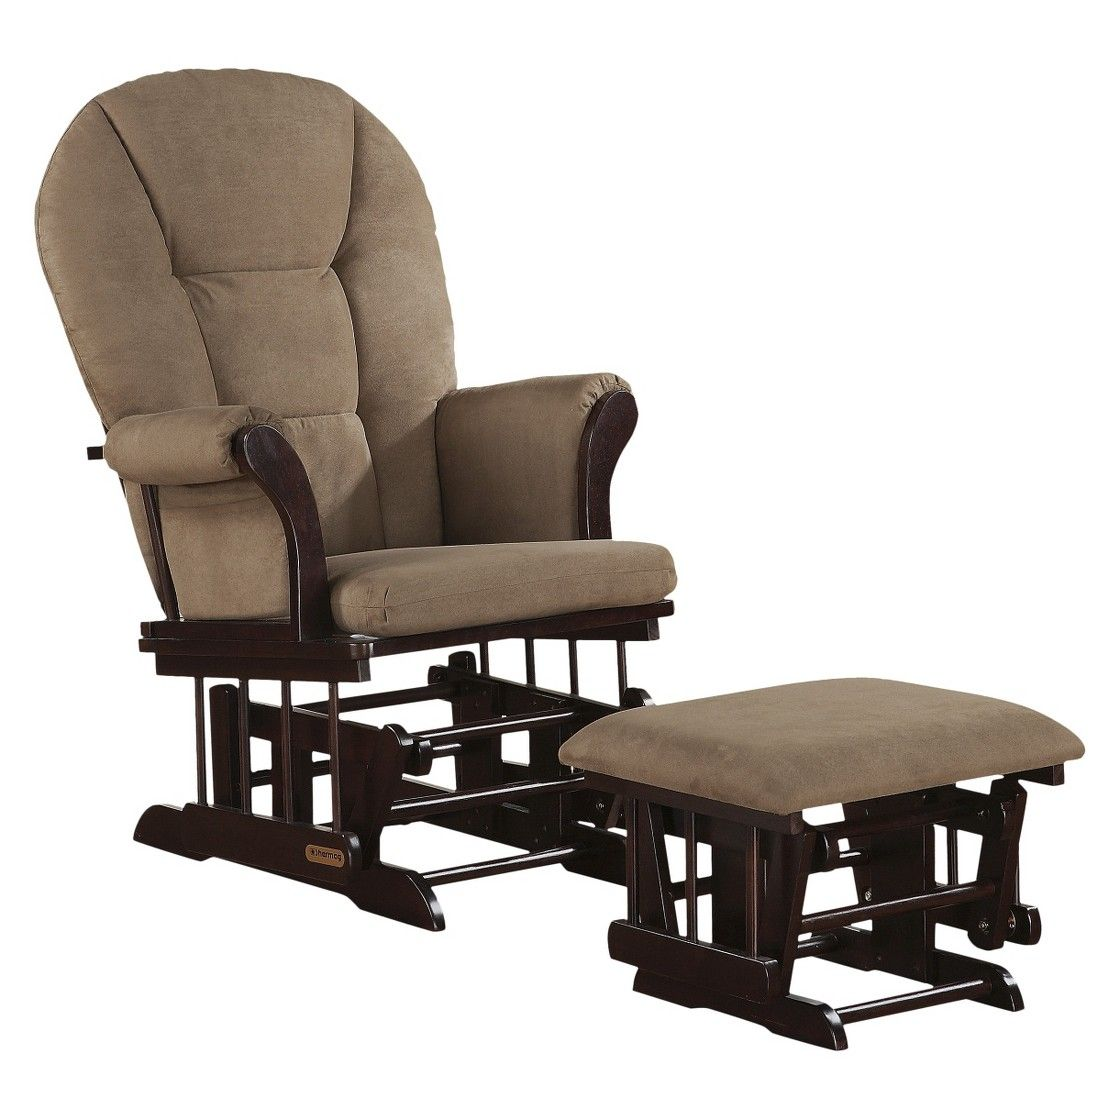 shermag glider rocker and ottoman combo glider on Shermag Glider Chair id=26645